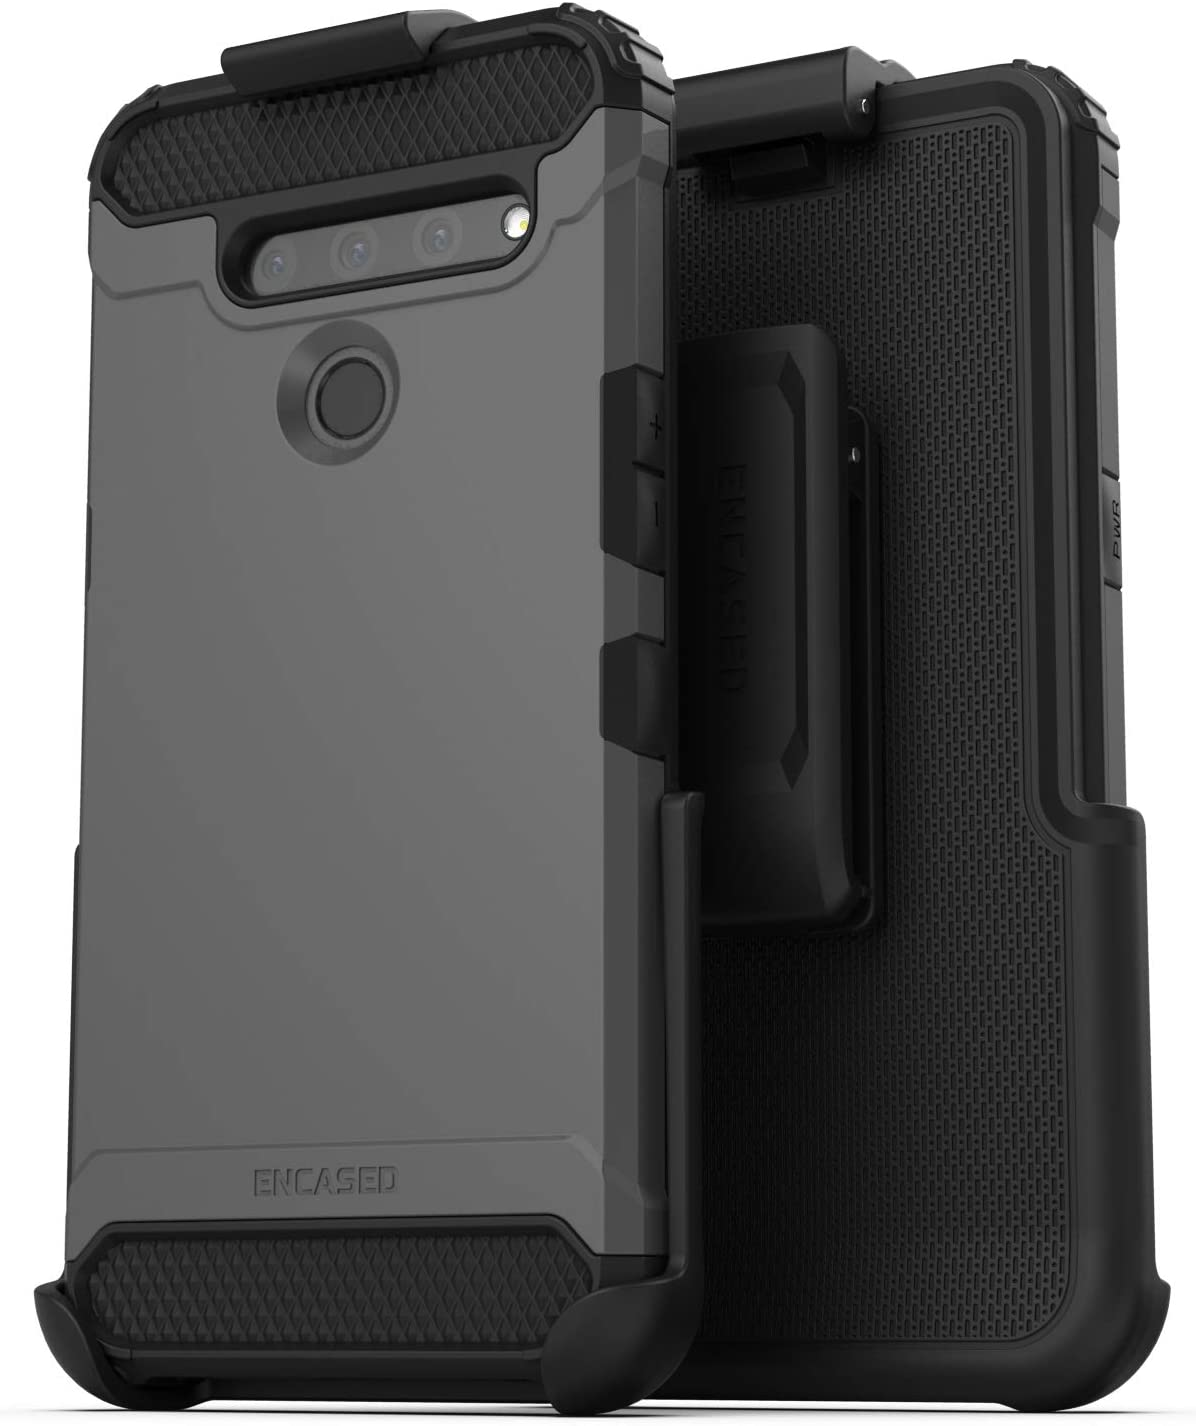 Encased LG V50 ThinQ Belt Clip Holster Case (2019 Scorpio Armor) Ultra Protective Tough Grip Cover with Holder - Gunmetal Grey